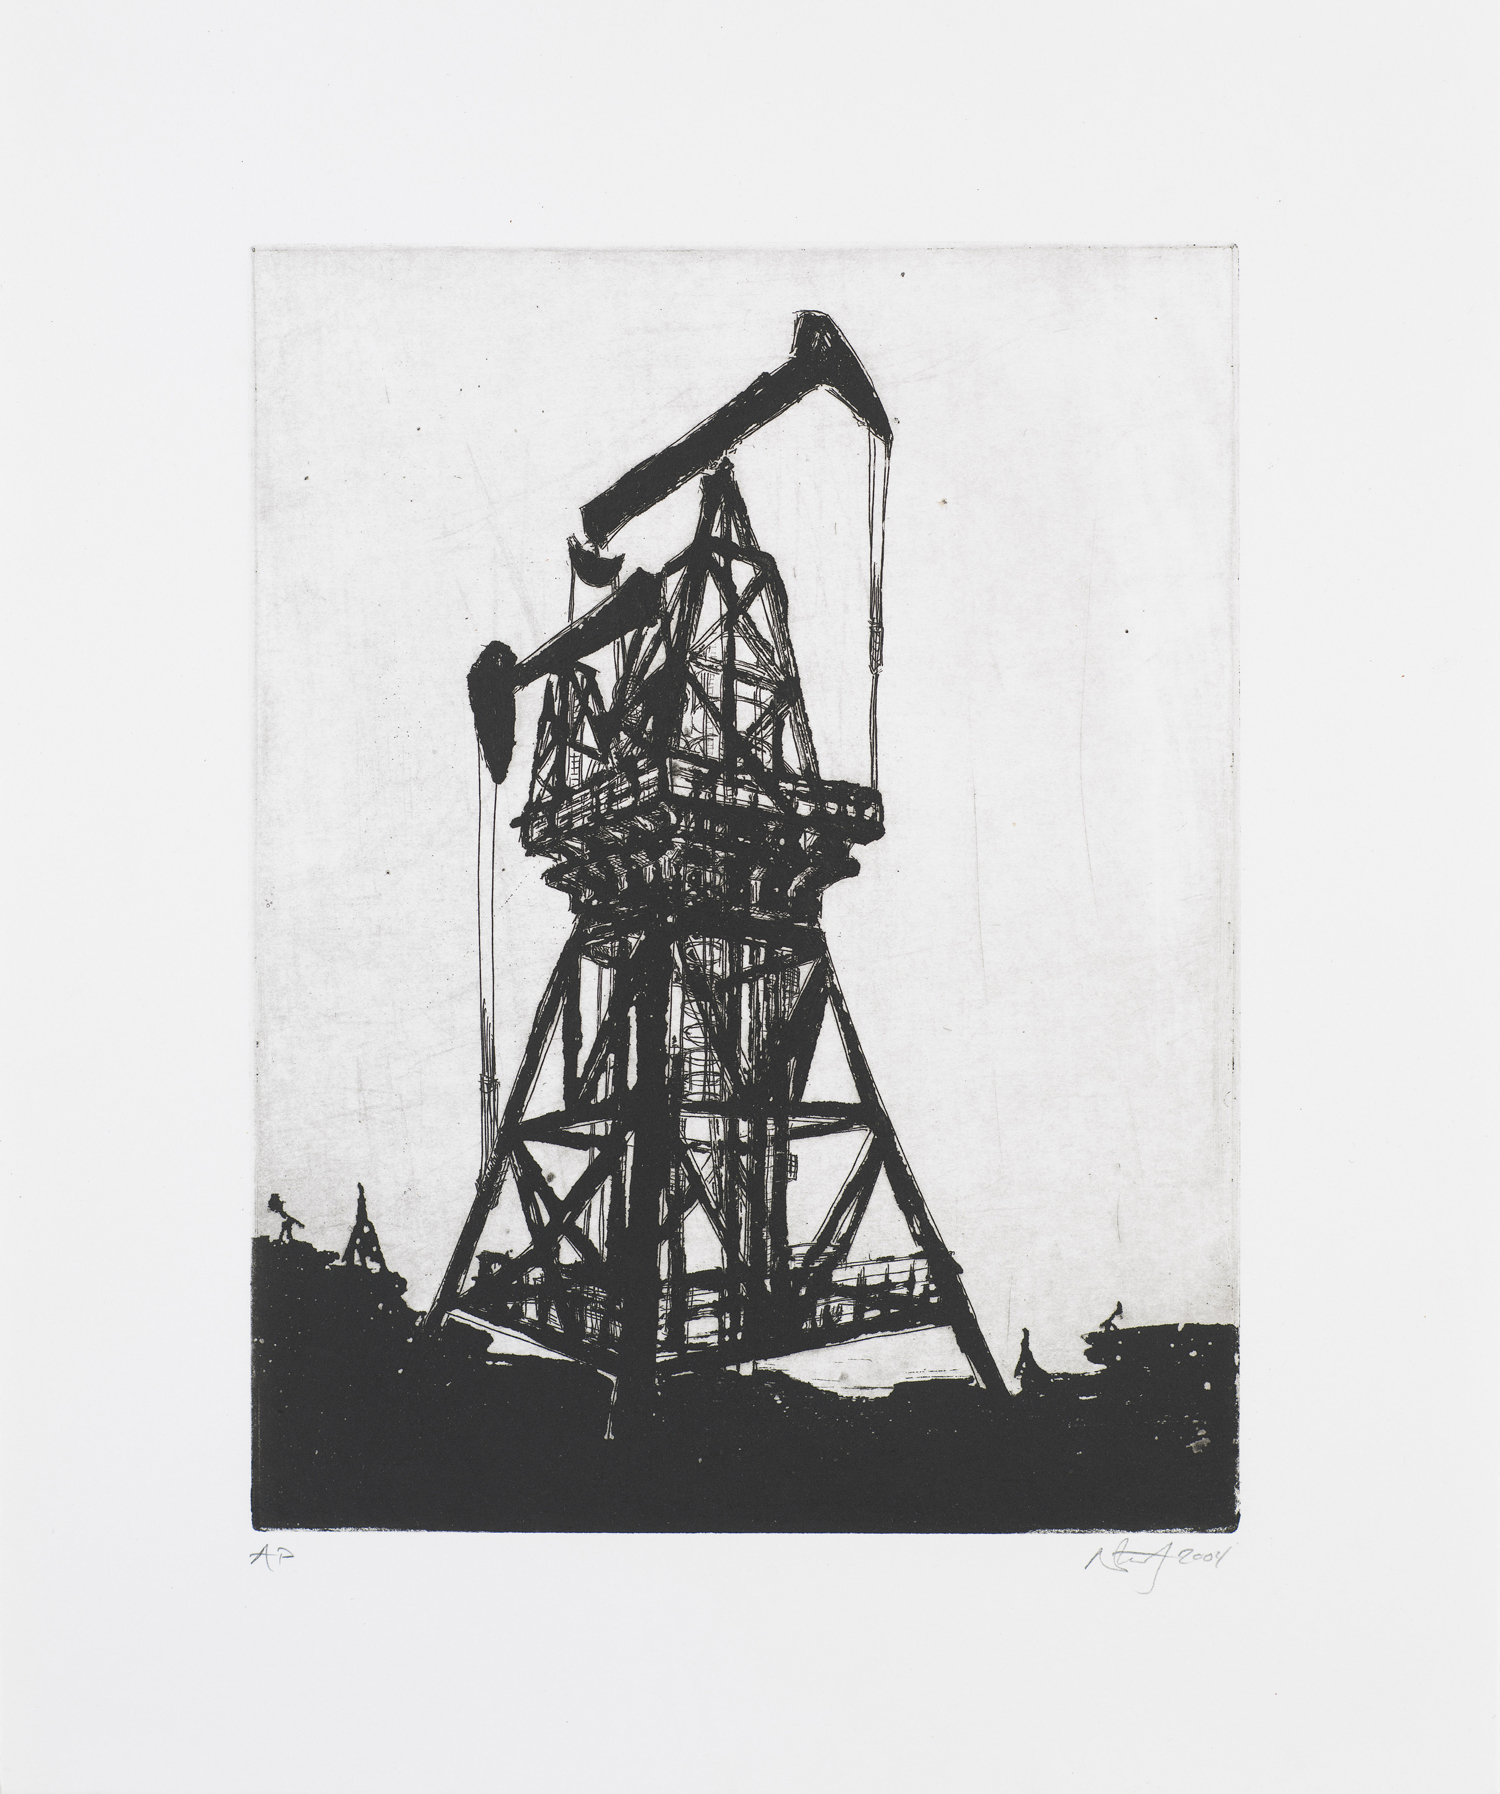 """Monument I (Oil-Rig)  2004; Intaglio on paper; 14.5"""" x 12""""; Self published; Edition of 12"""